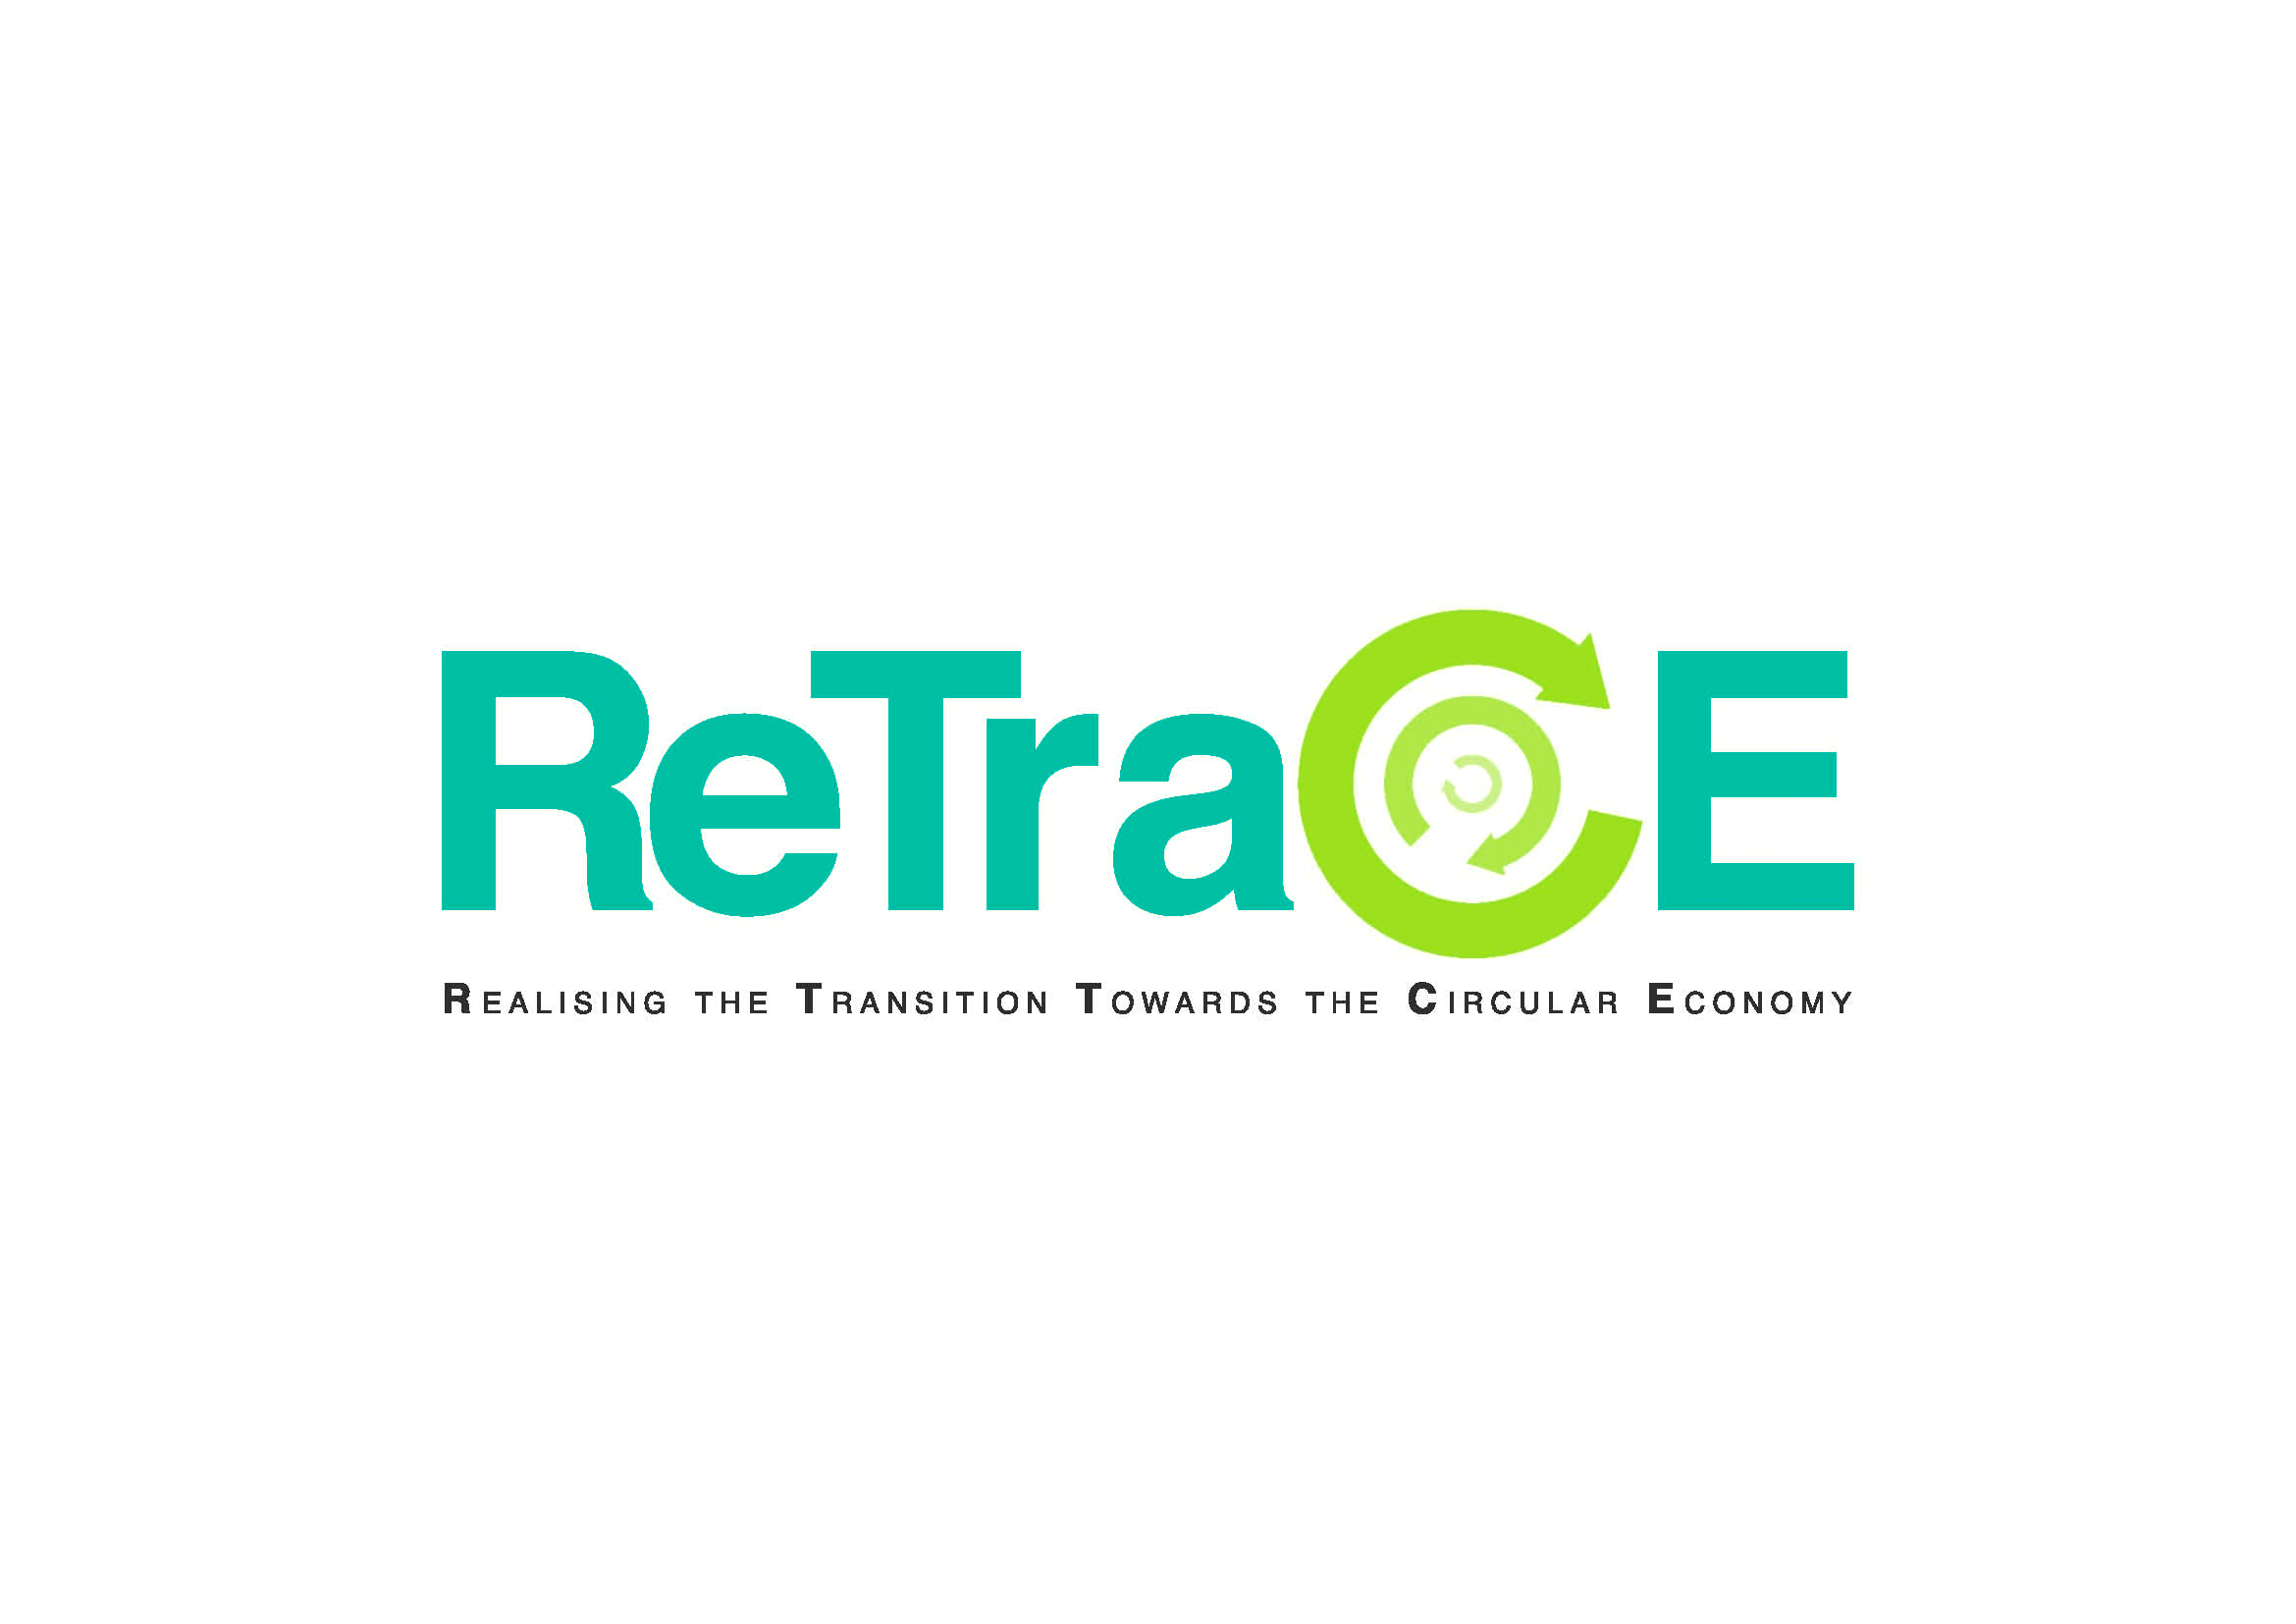 Realising the Transition to the Circular Economy (ReTraCE) project / PhD Studies at the South East European Research Centre (SEERC): Call for Applications (Submission Deadline: January 15, 2019)